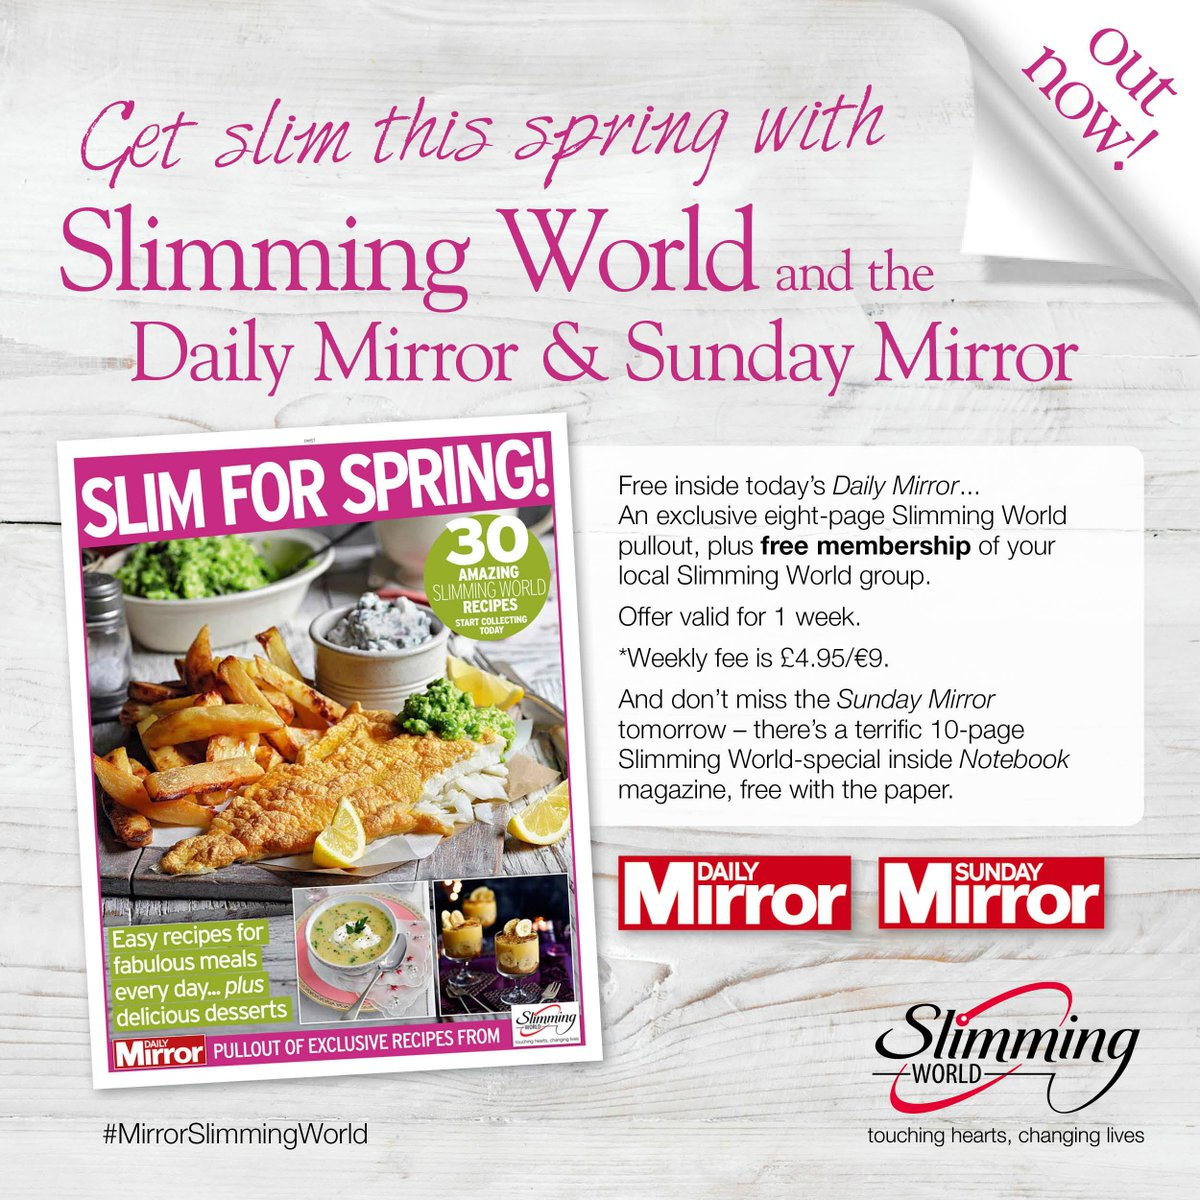 Slimming world on twitter pick up today 39 s dailymirror Slimming world my account